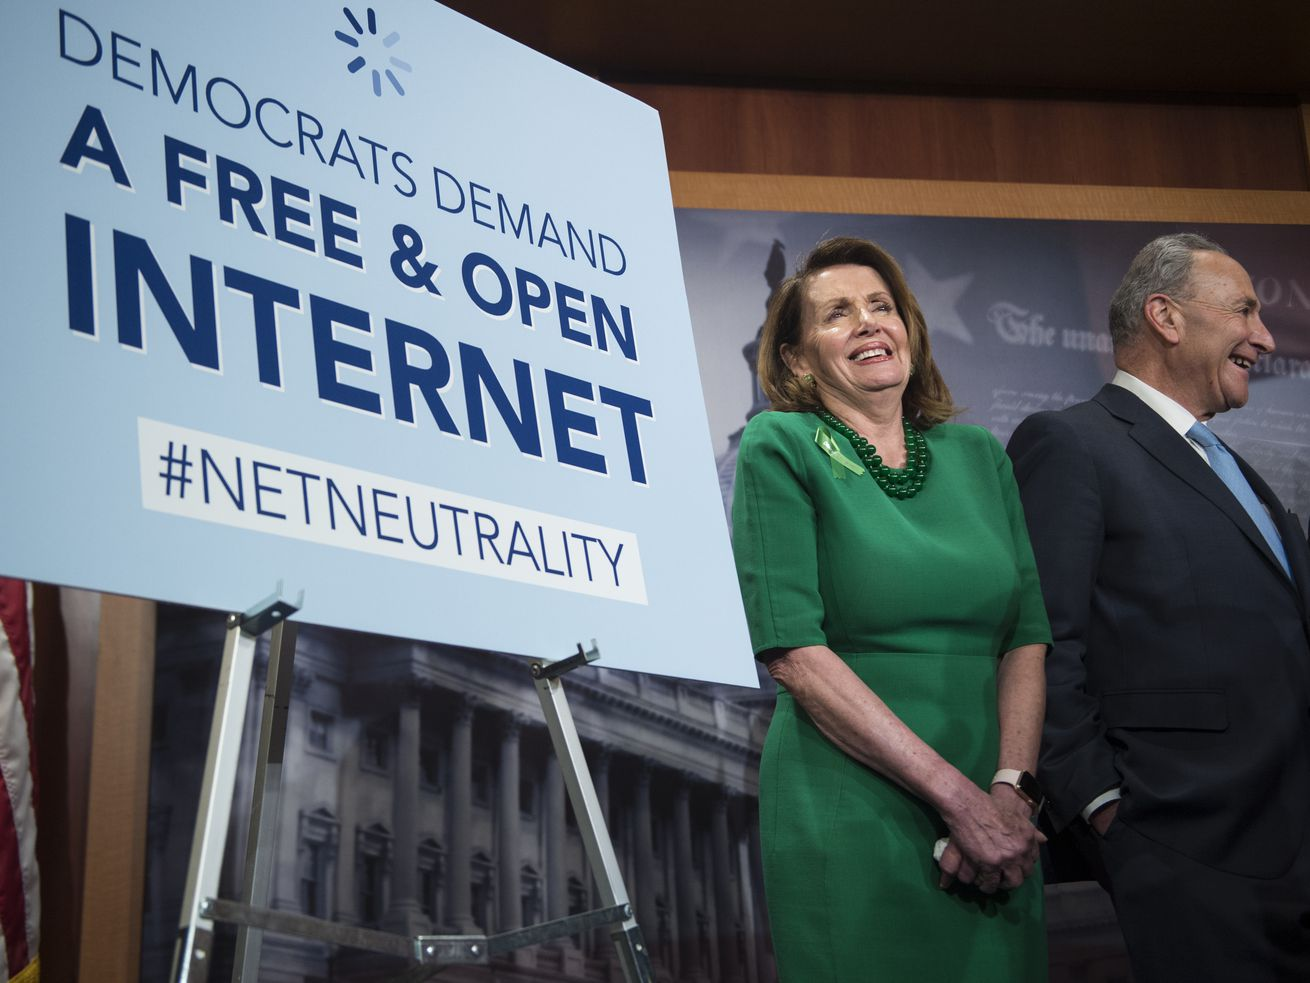 photo image Recode Daily: After a close U.S. Senate vote, net neutrality lives to fight another day